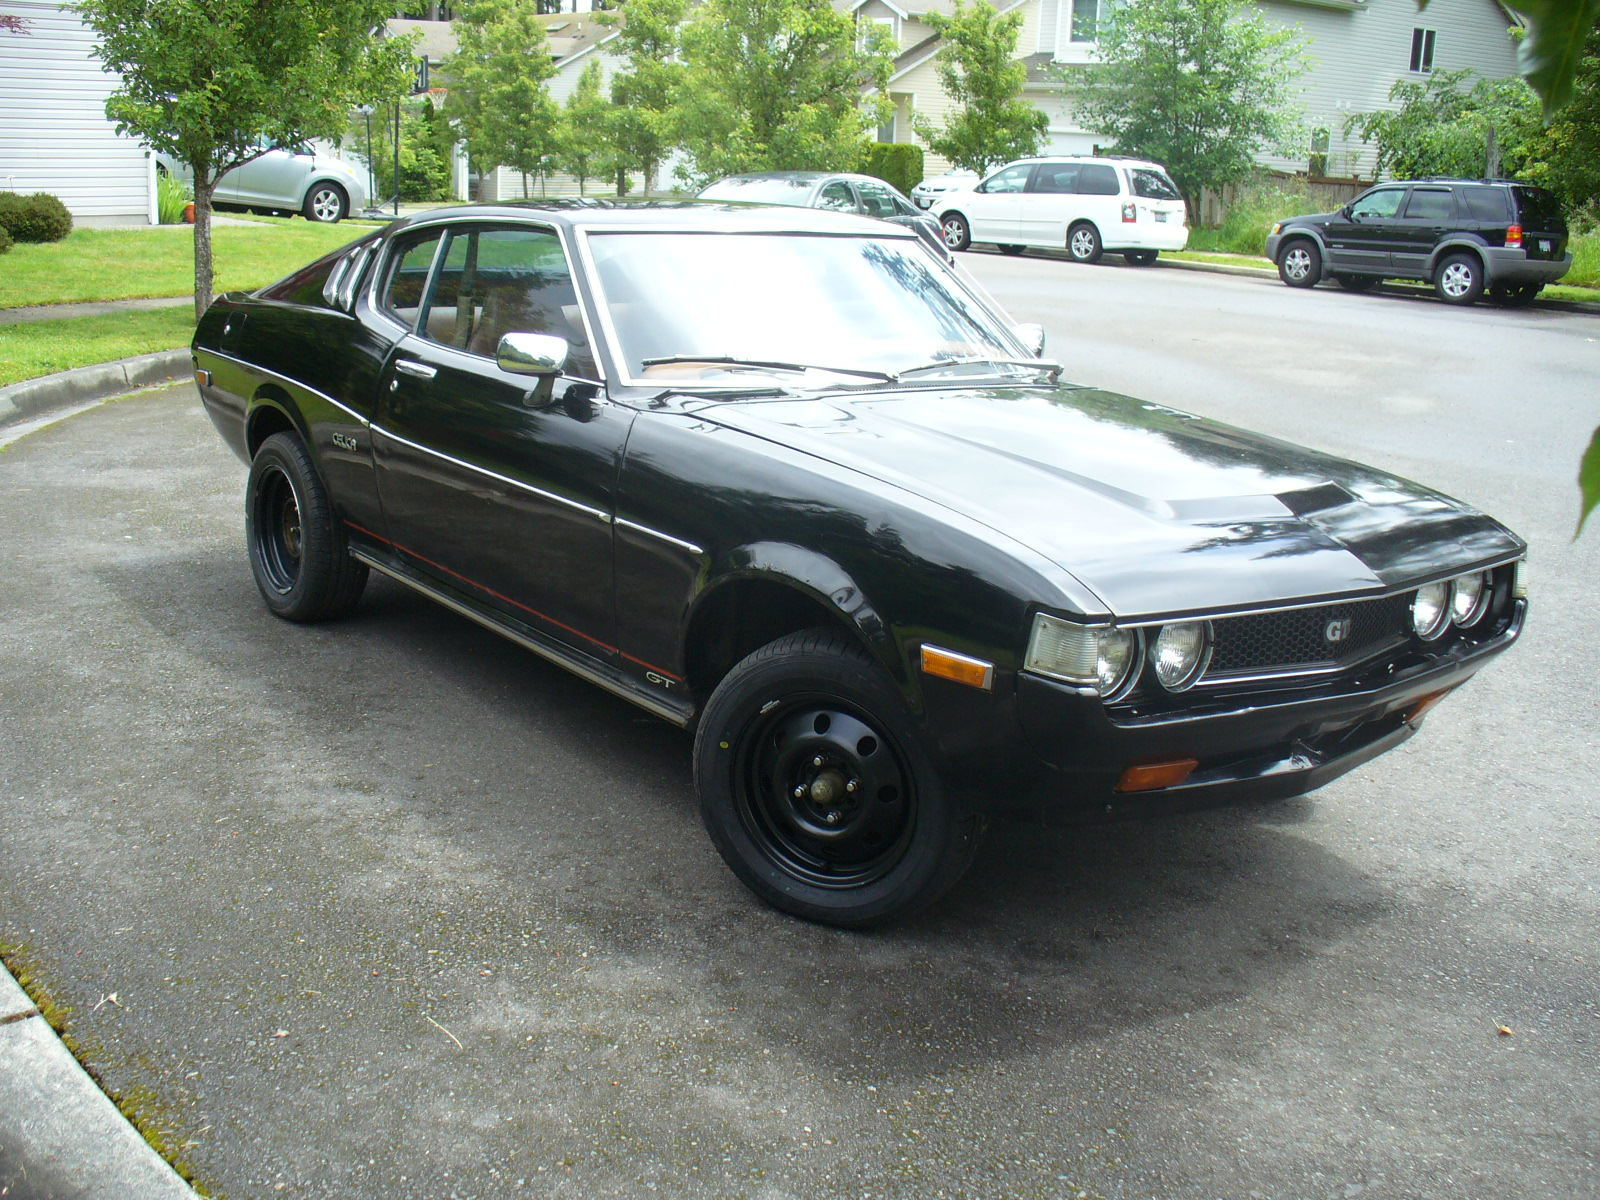 1977 Toyota Celica For Sale: Daily Turismo: Auction Watch: 1977 Toyota Celica GT Liftback